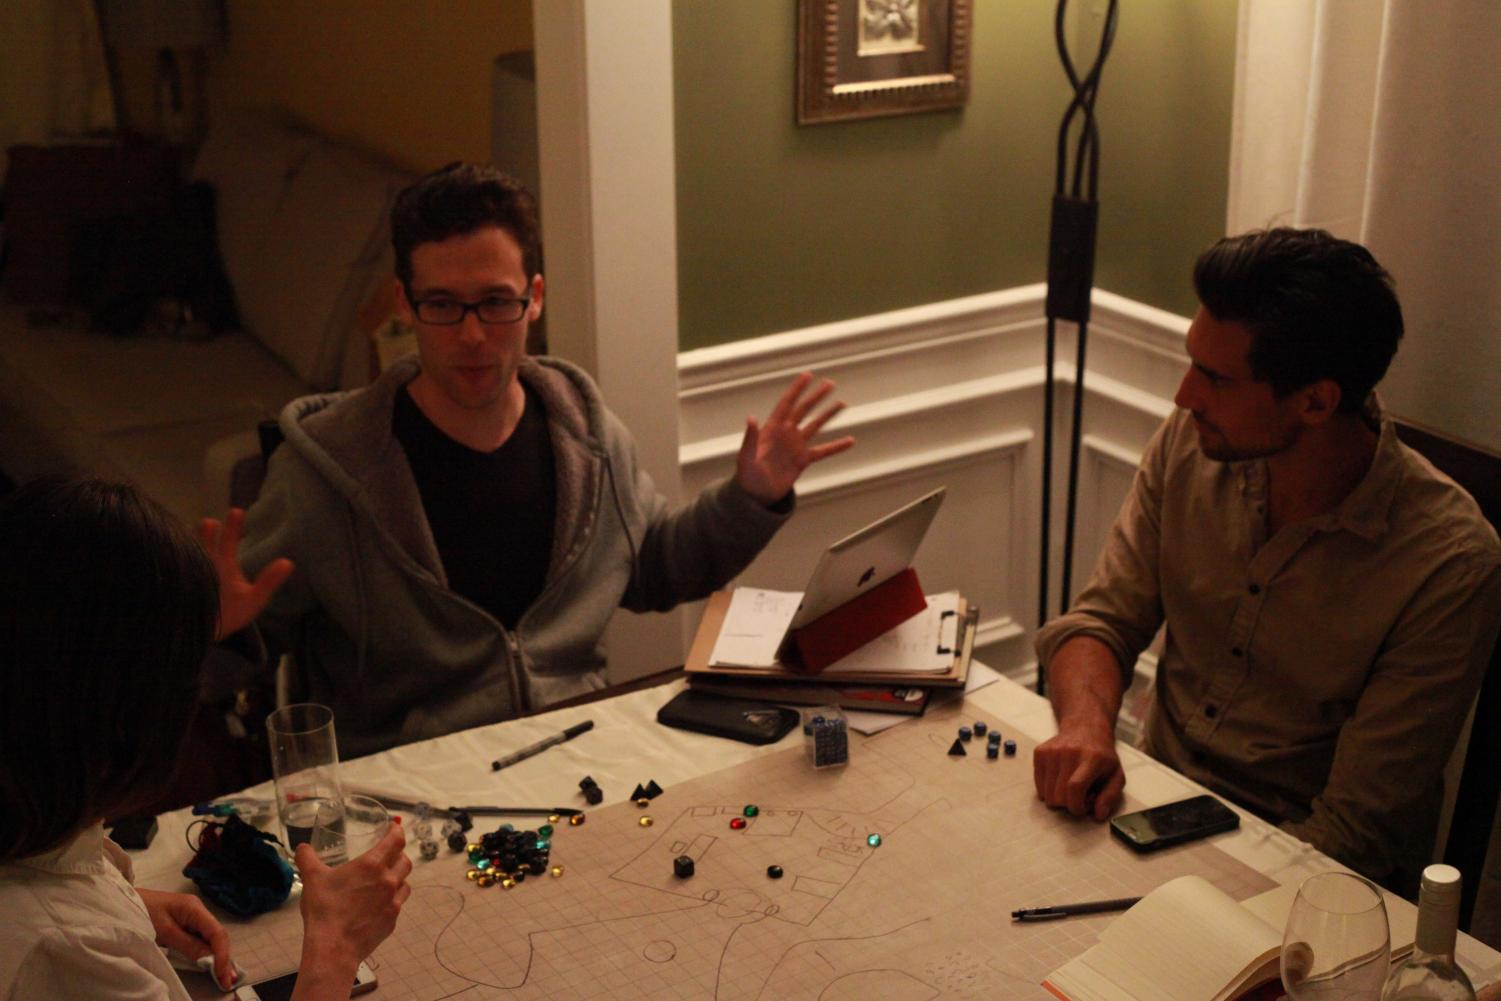 For the friends around the table, the DND adventure is just beginning